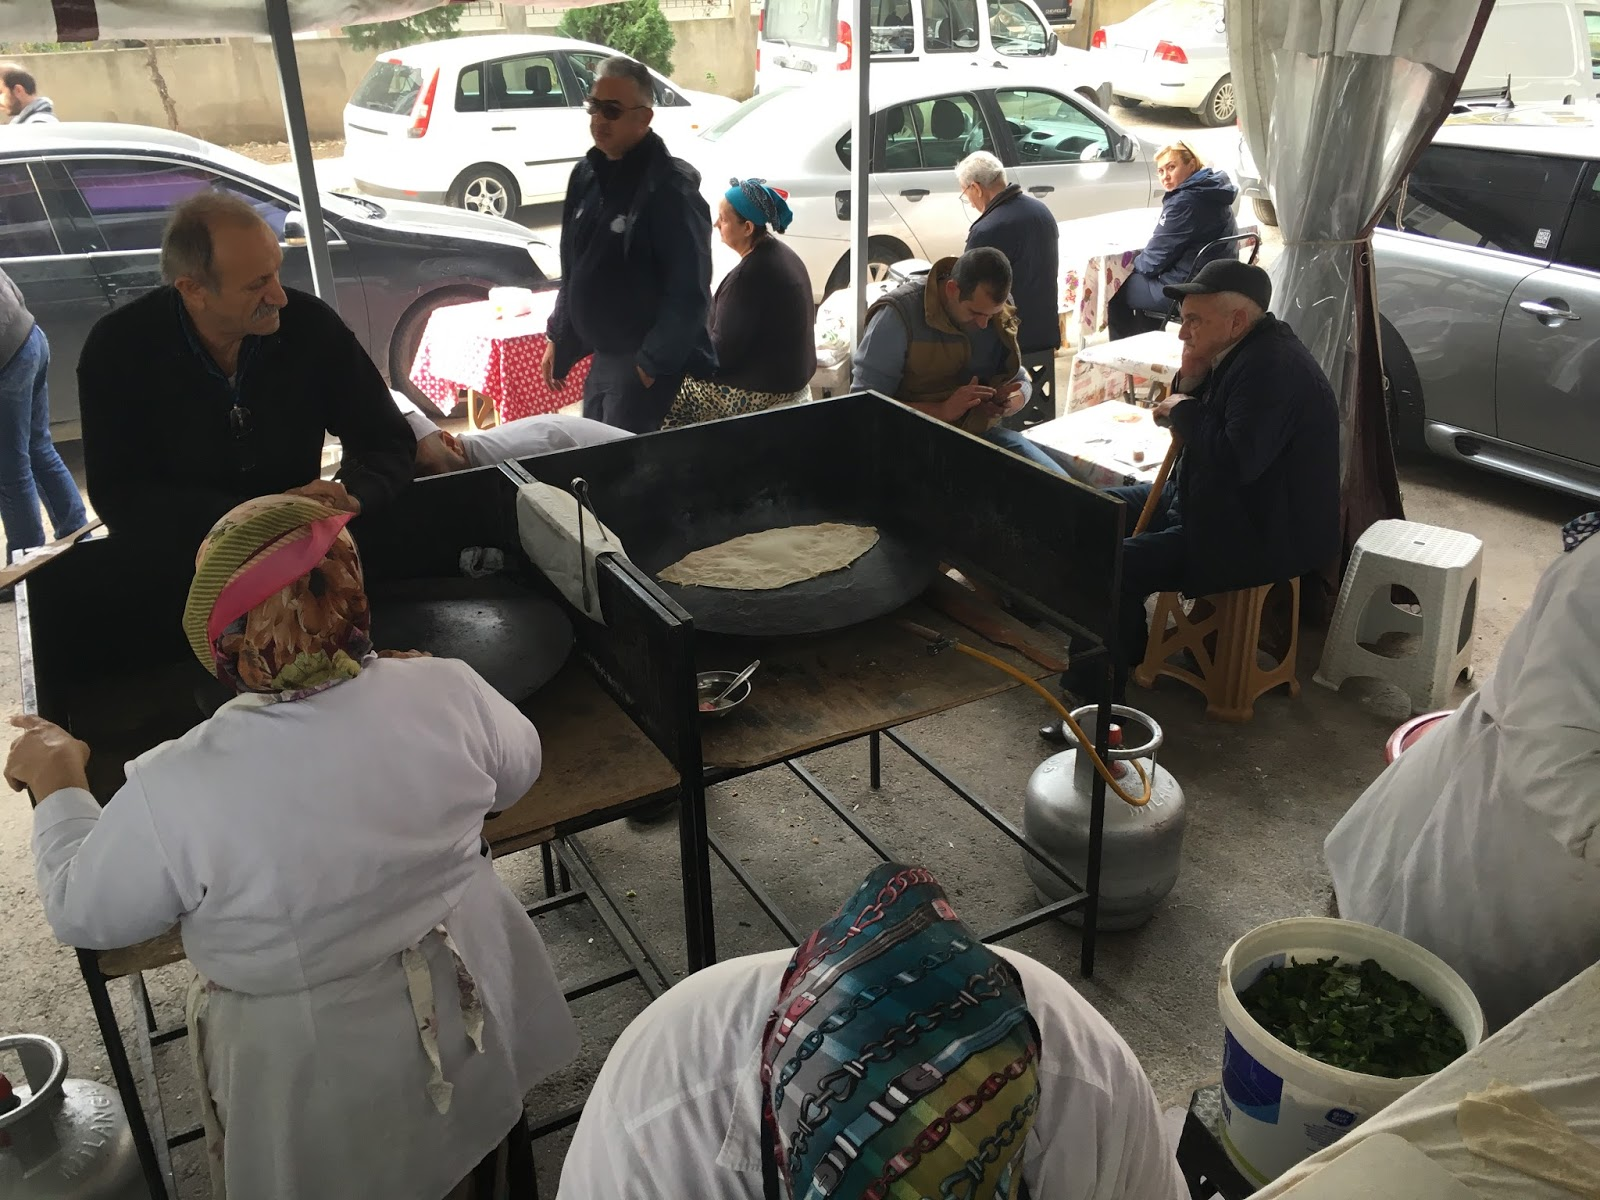 LeeZe visits Izmir Sunday farmer's market. The stuffed dough is place on this gas fired hot plate and is cooked for about 3 minutes.